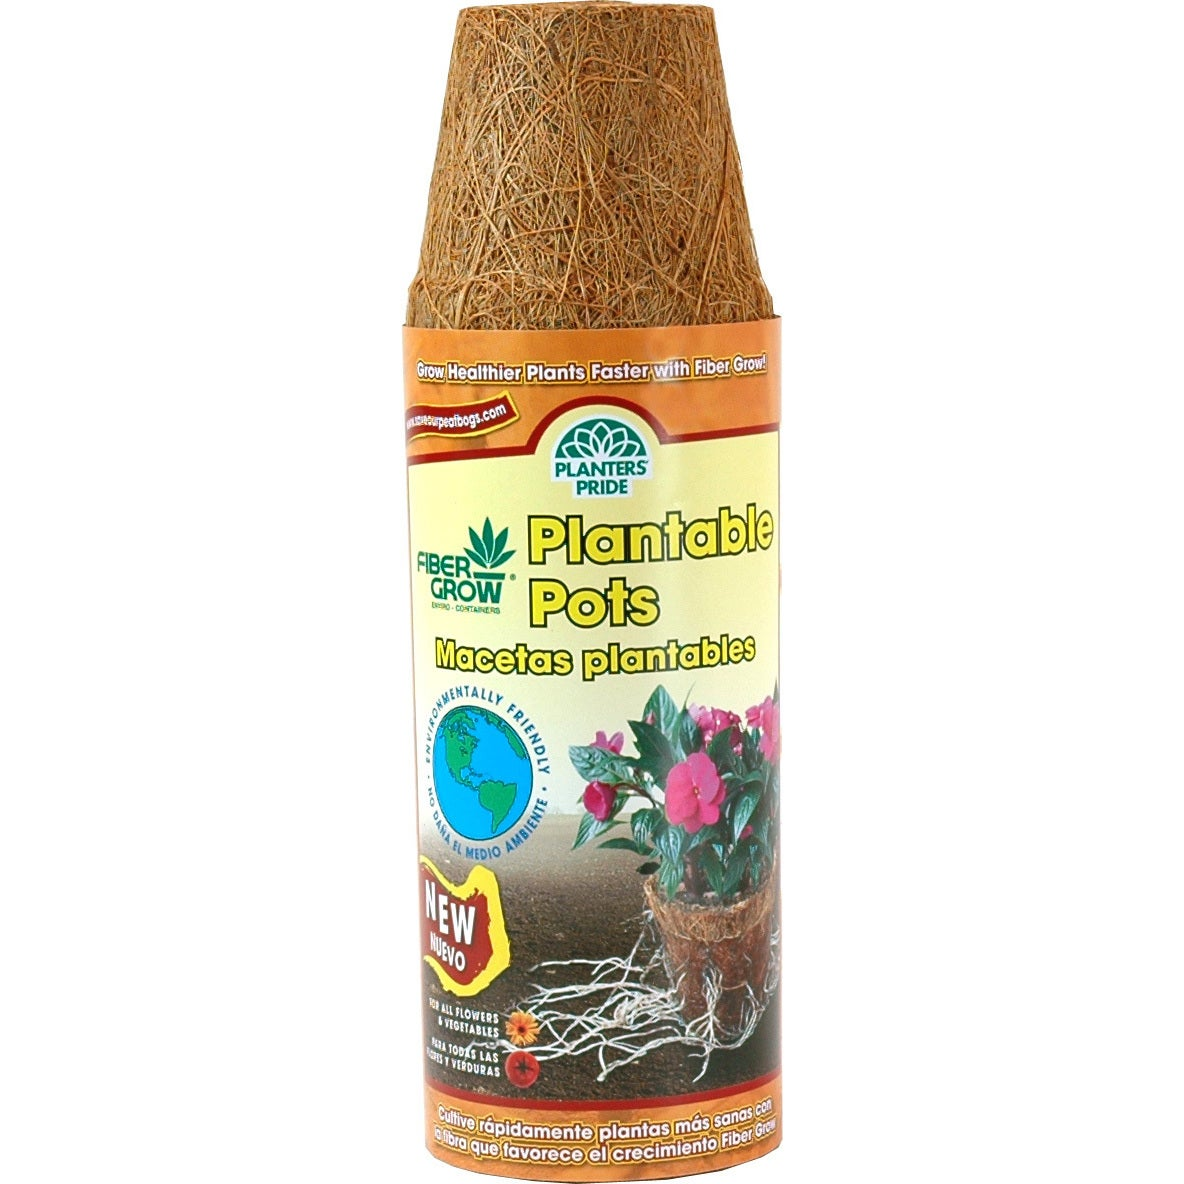 Planters Pride RZR02252 12 Pack 2-1/4 -inch Fiber Grow Po...